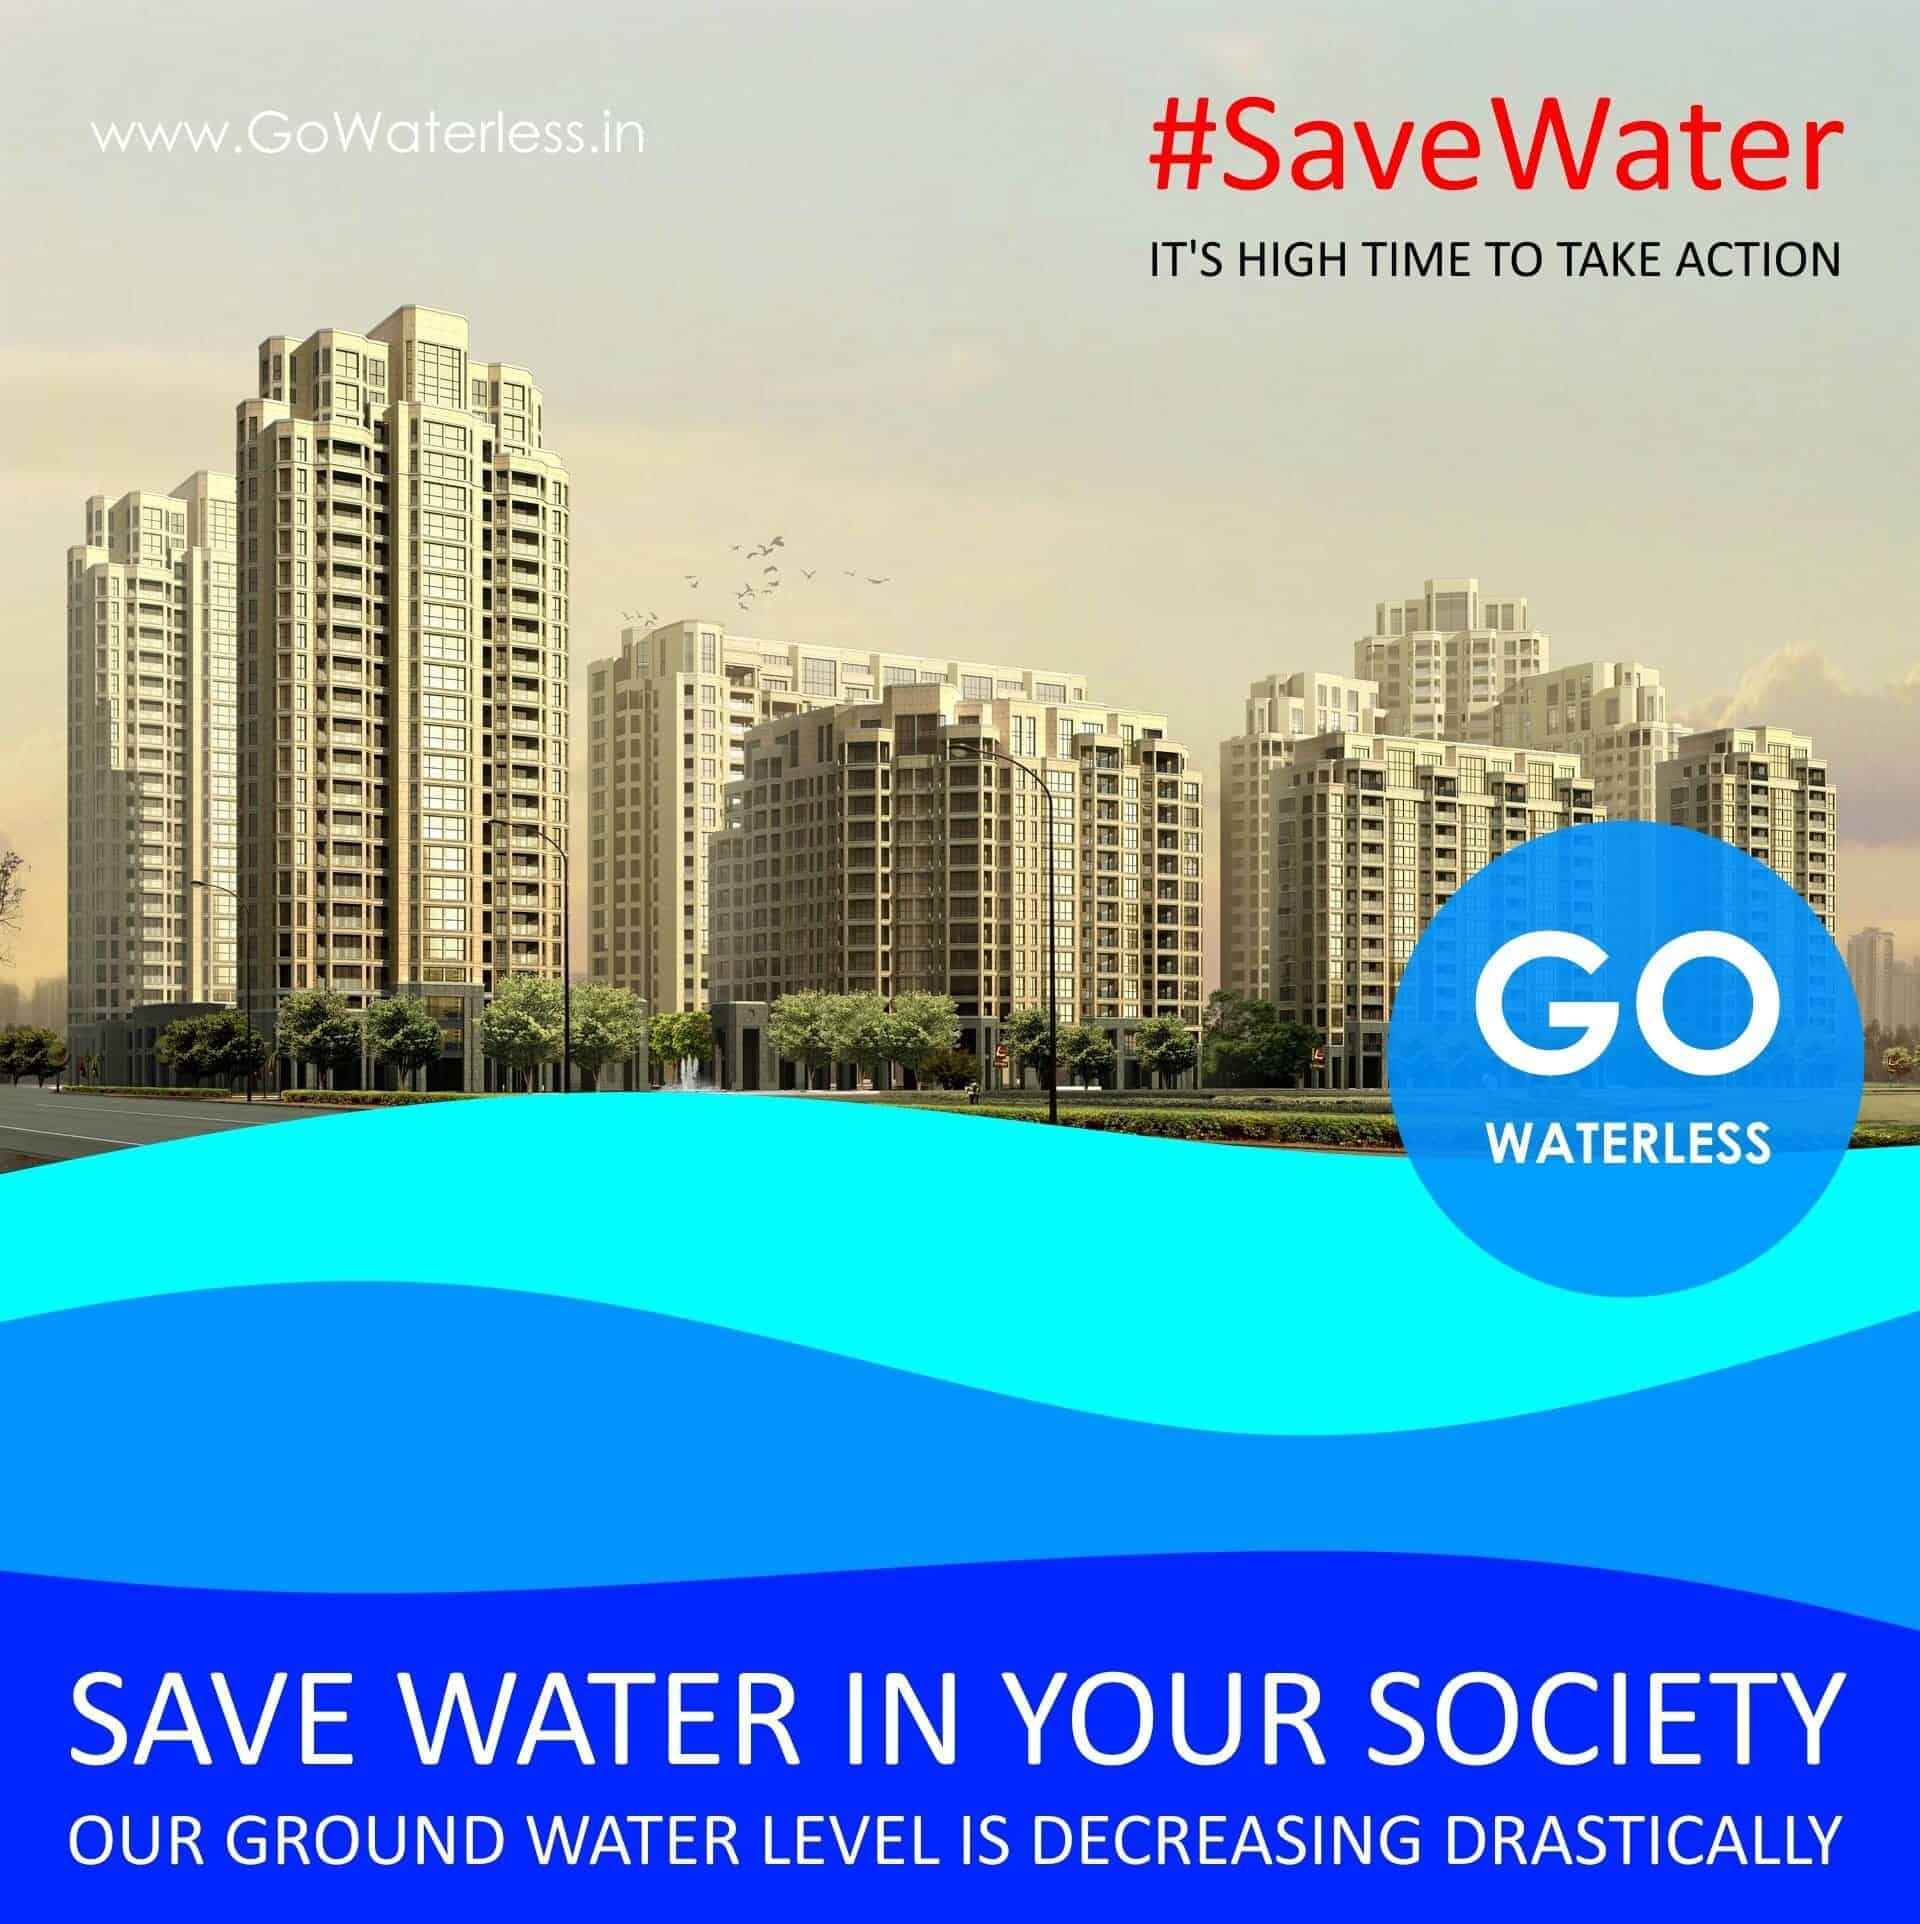 Save water in society